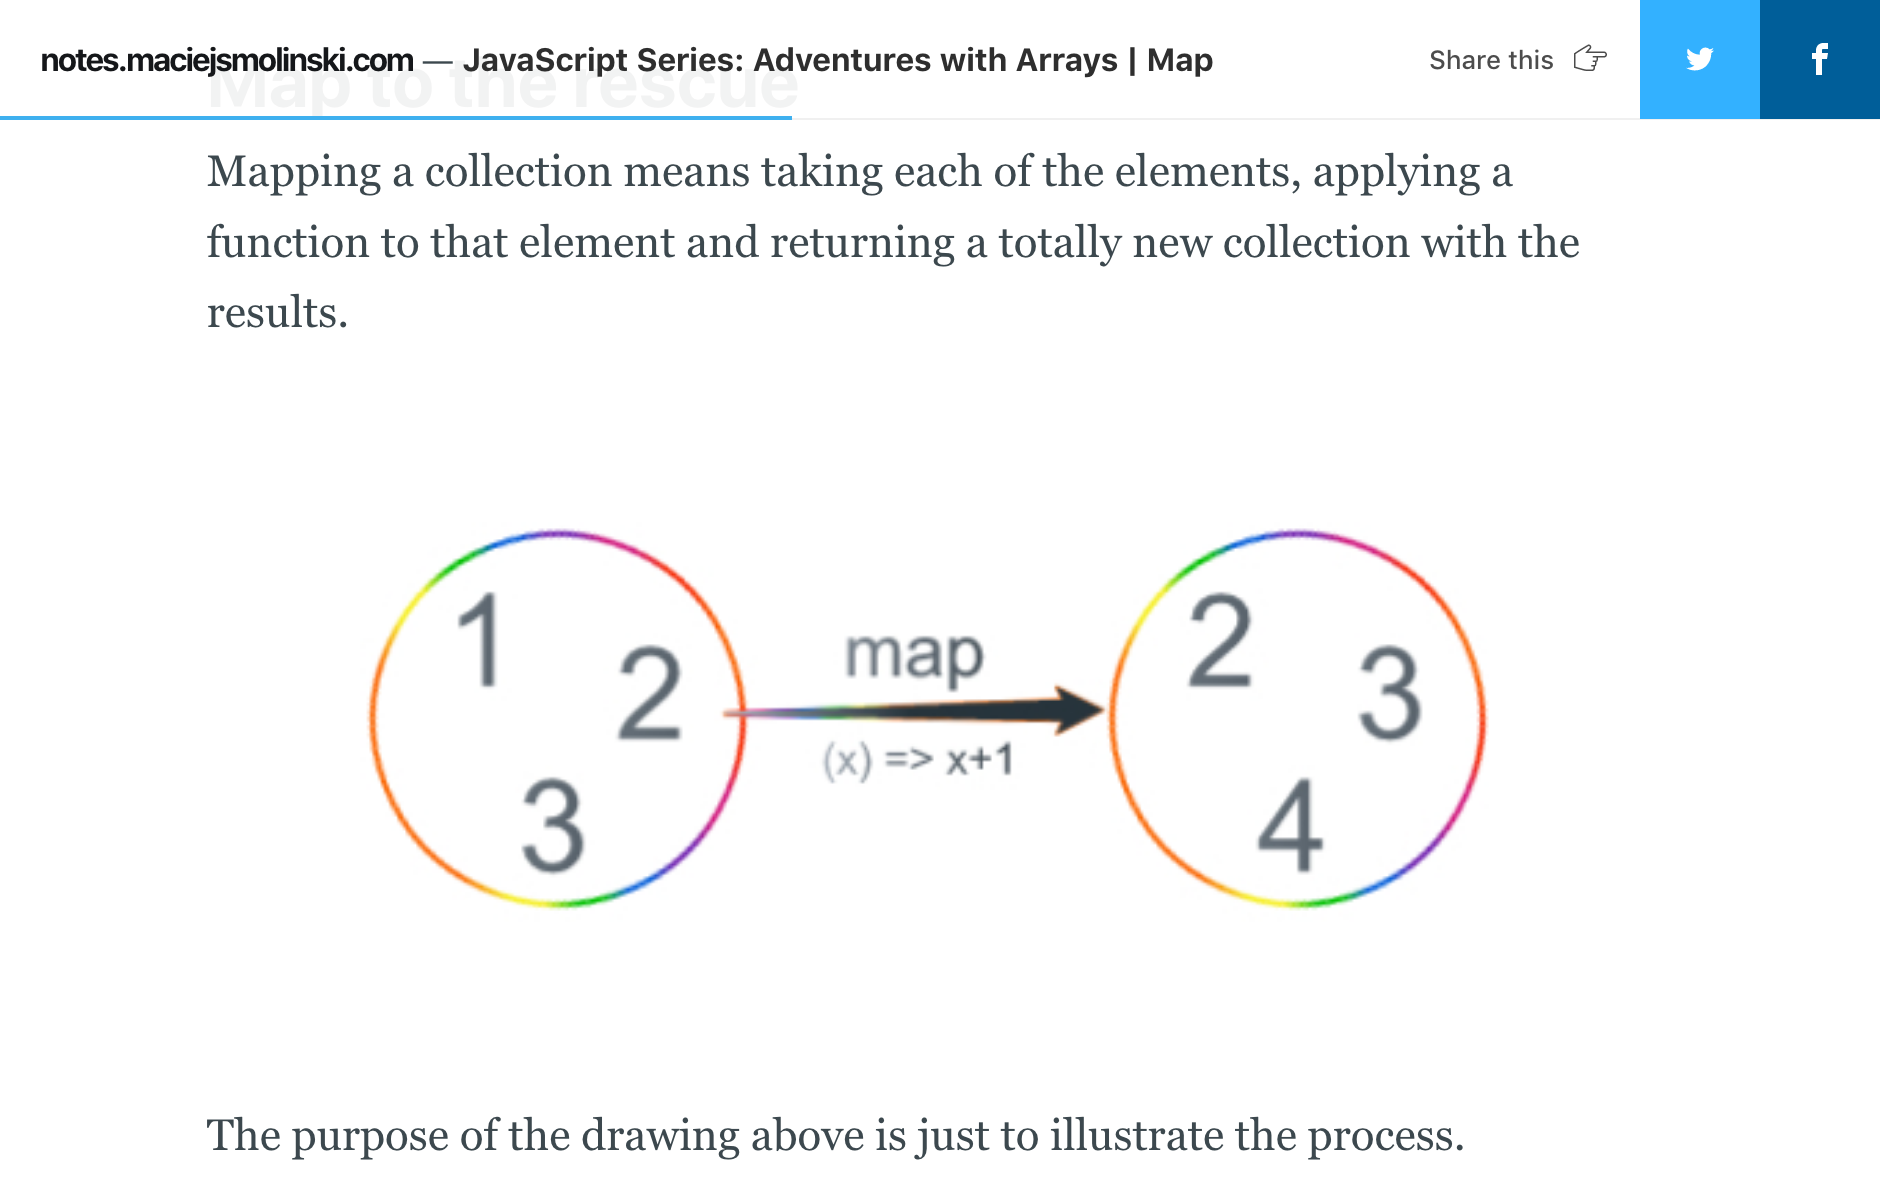 JavaScript Series: Adventures with Arrays | Map